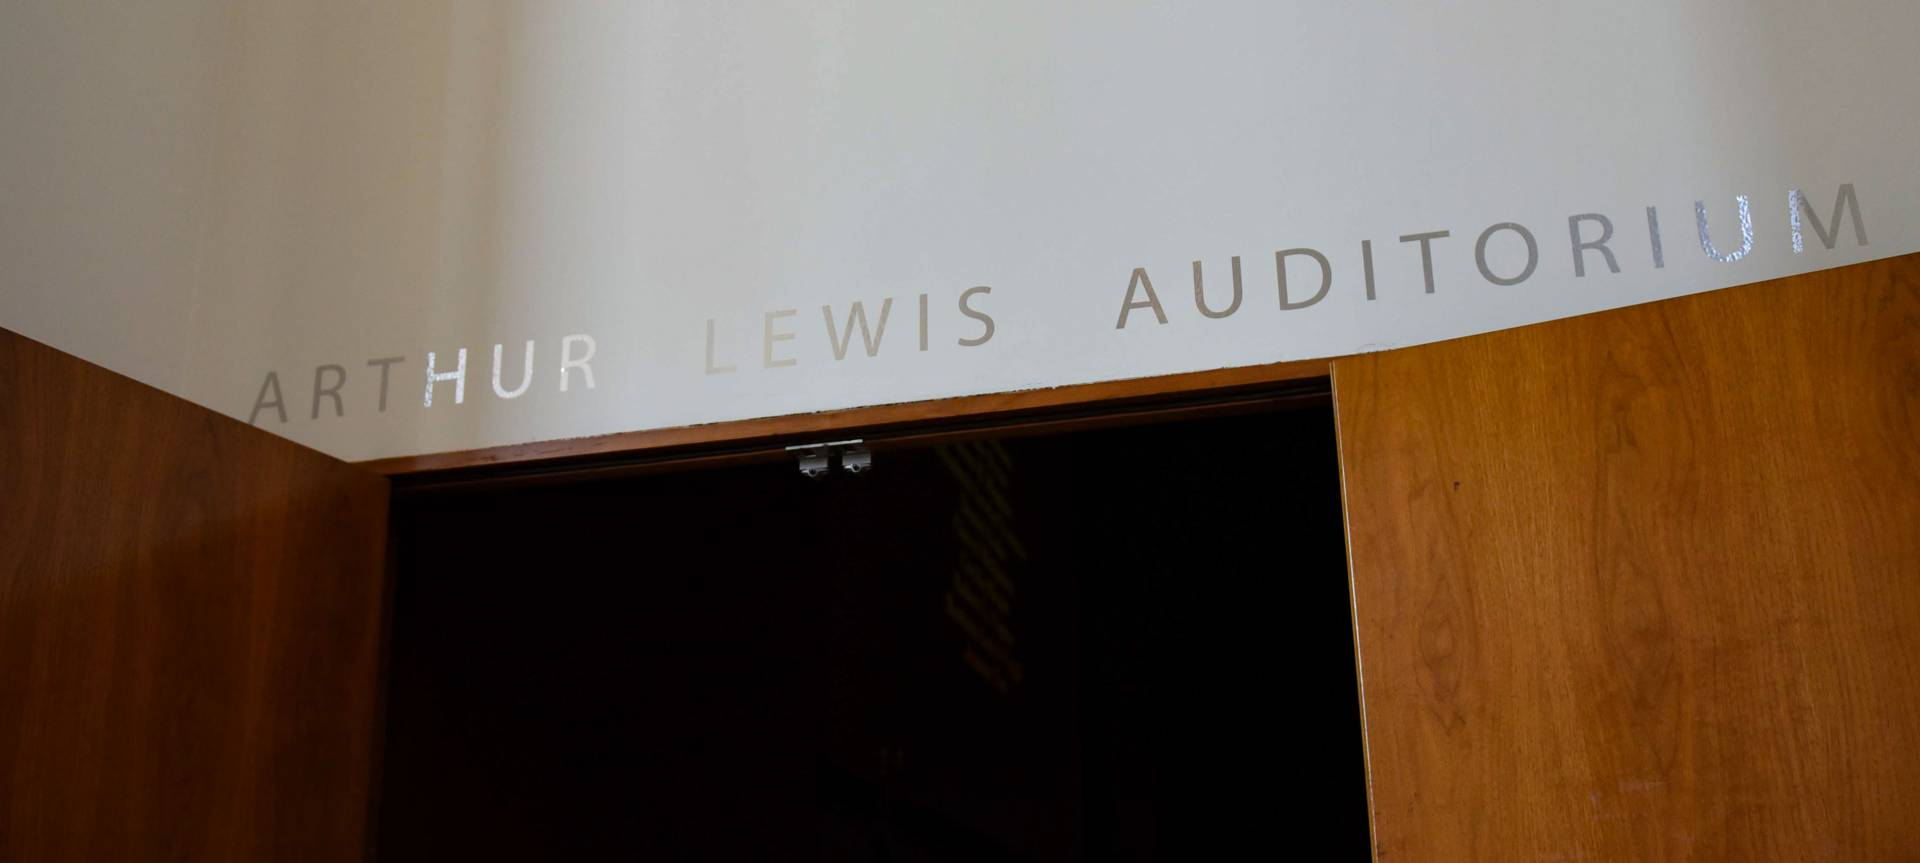 Arthur Lewis Auditorium sign